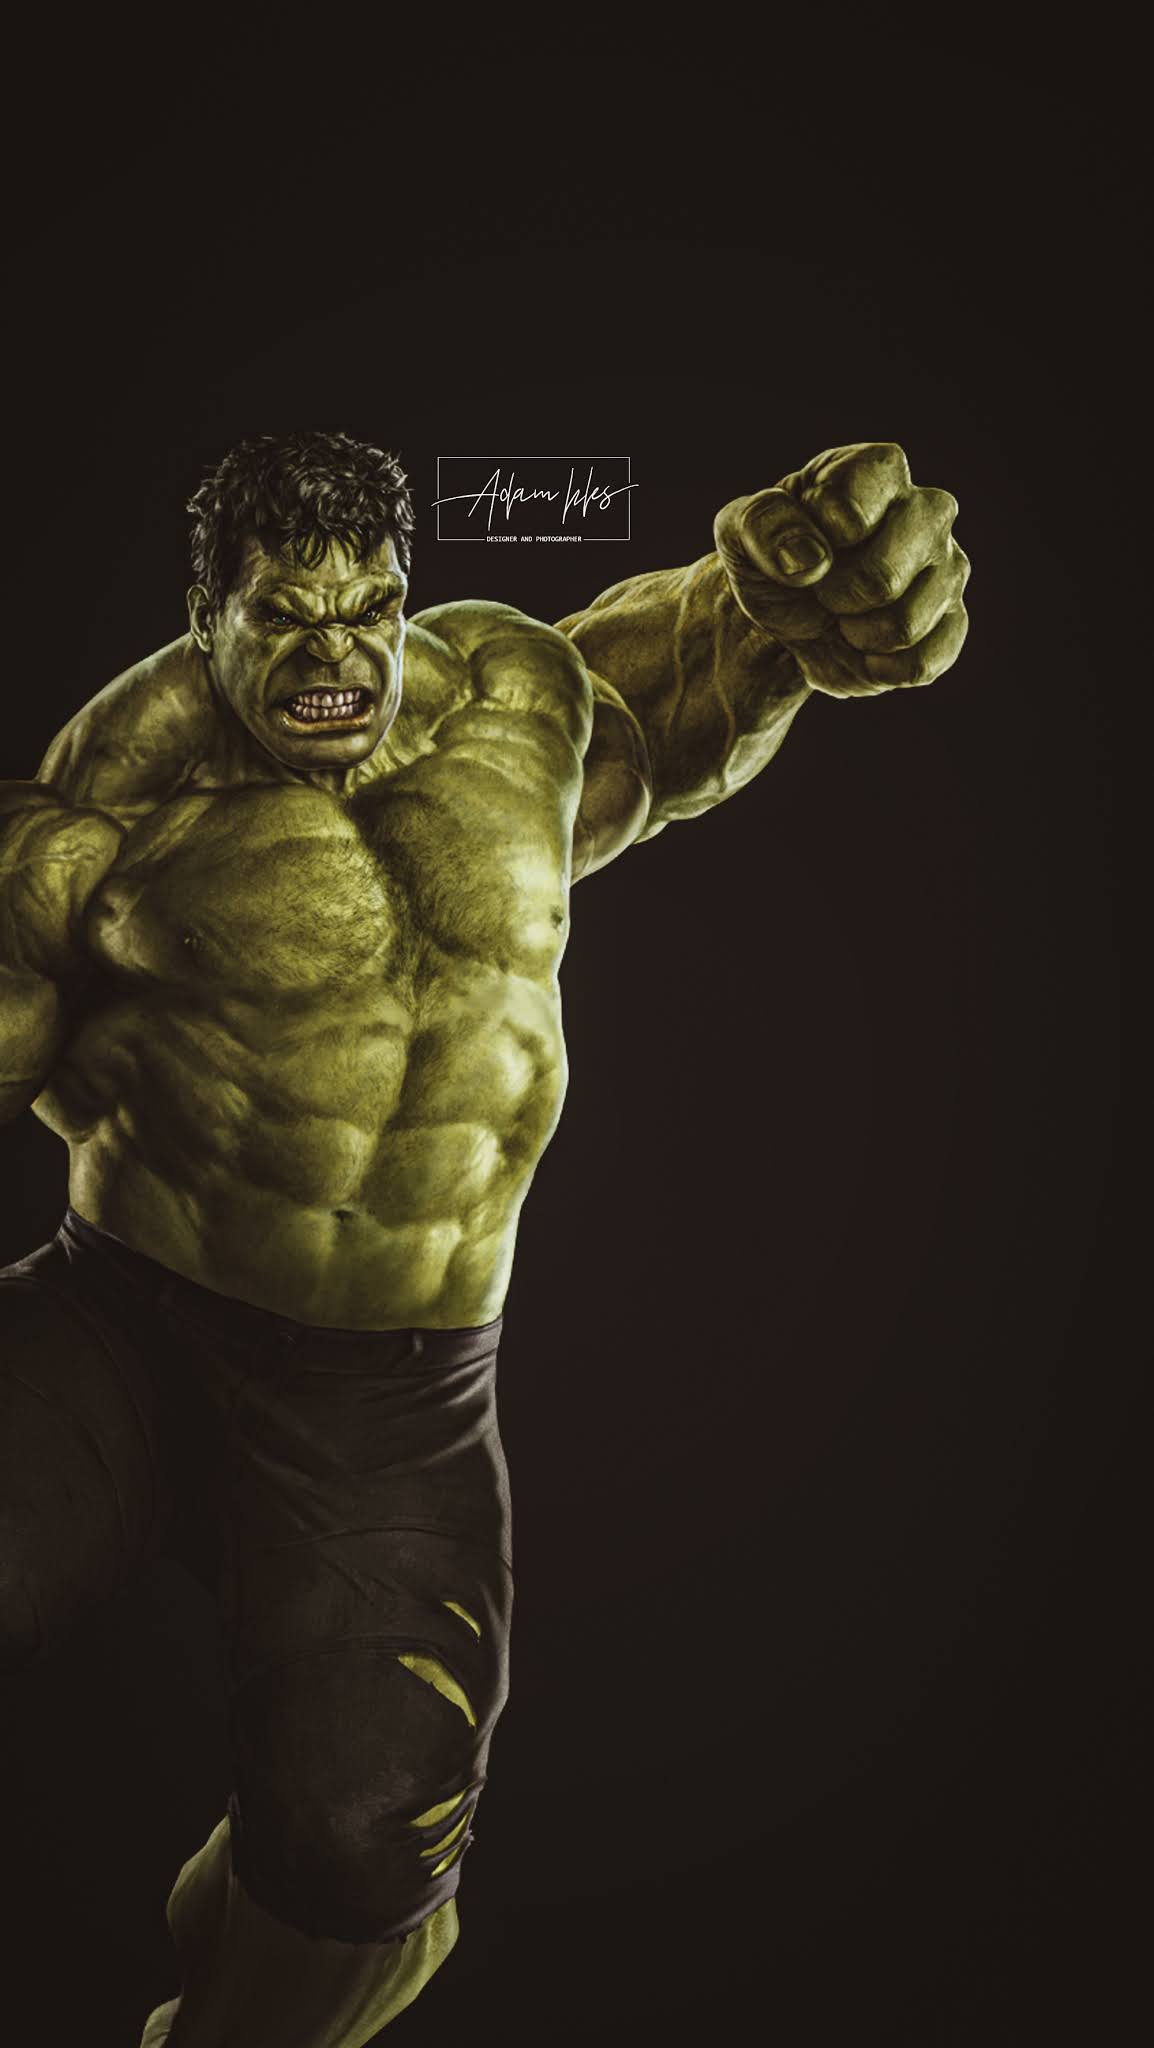 backgrounds 4k Black The most beautiful halk iPhone wallpapers